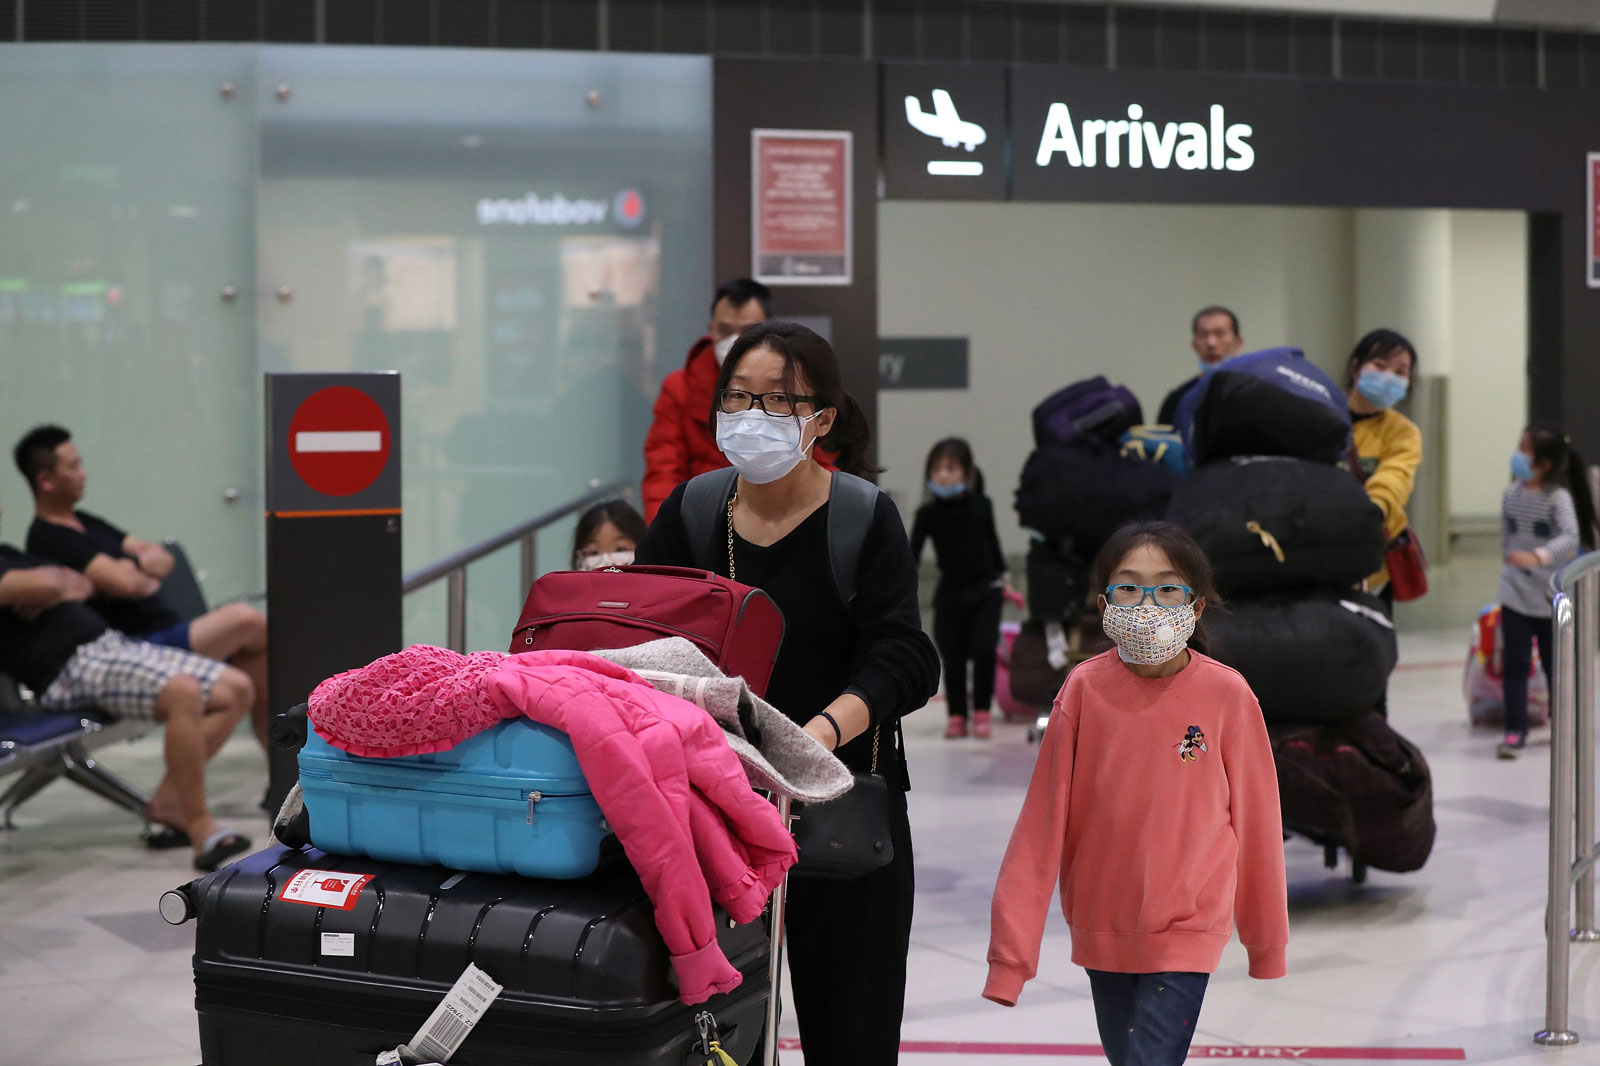 Passengers of a China Southern Airlines flight arrive at Perth International Airport in Australia on February 2